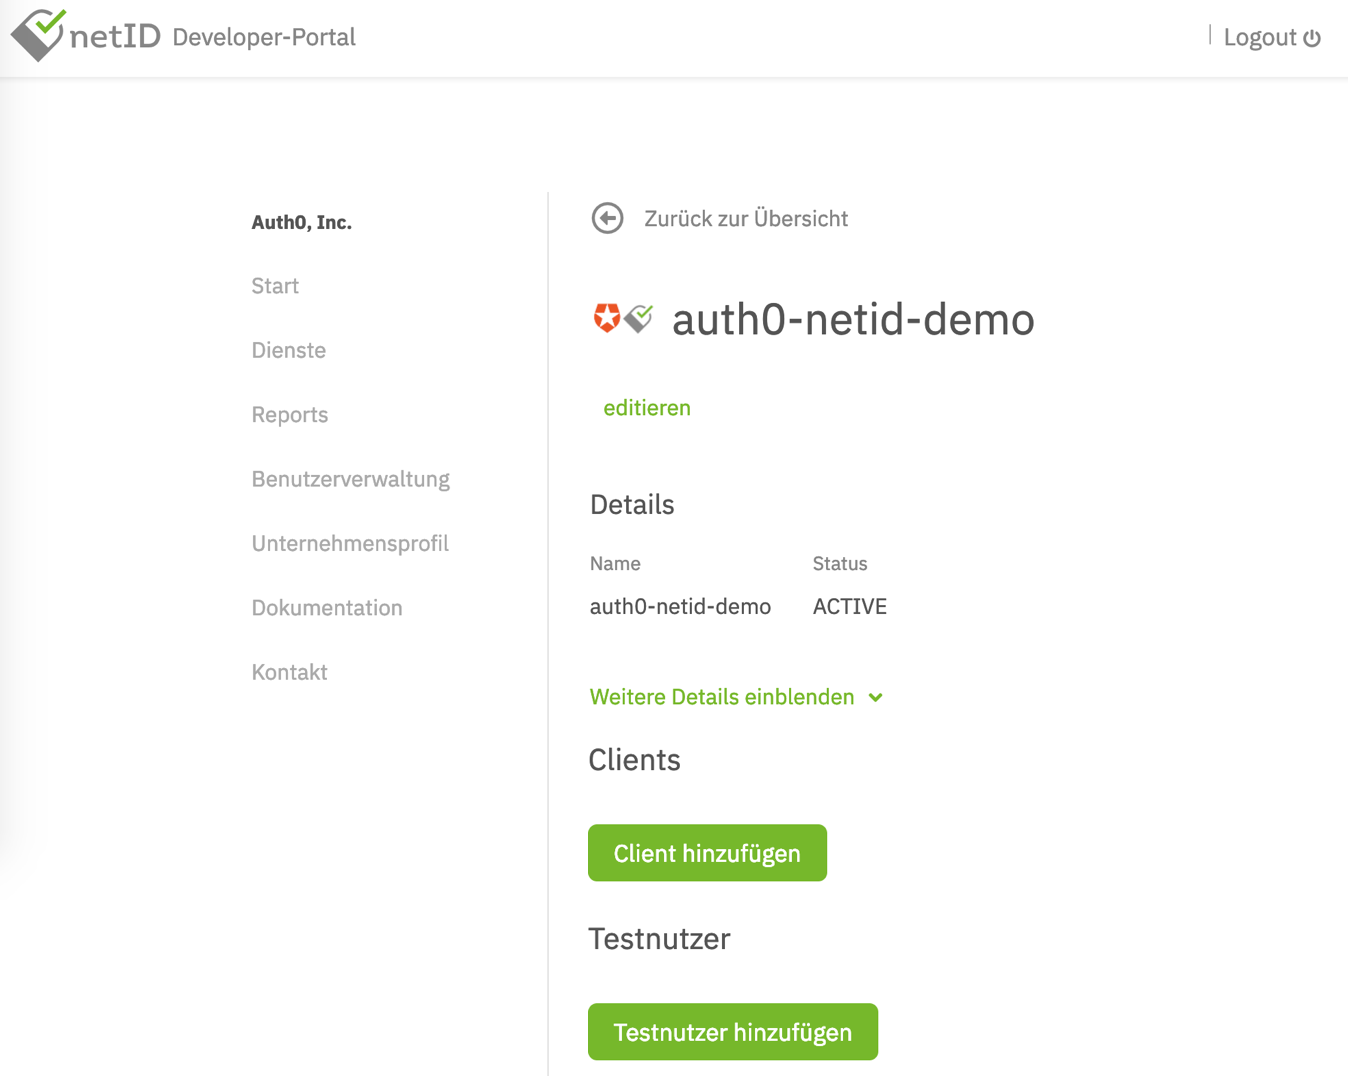 Reviewing the details in the netID developer